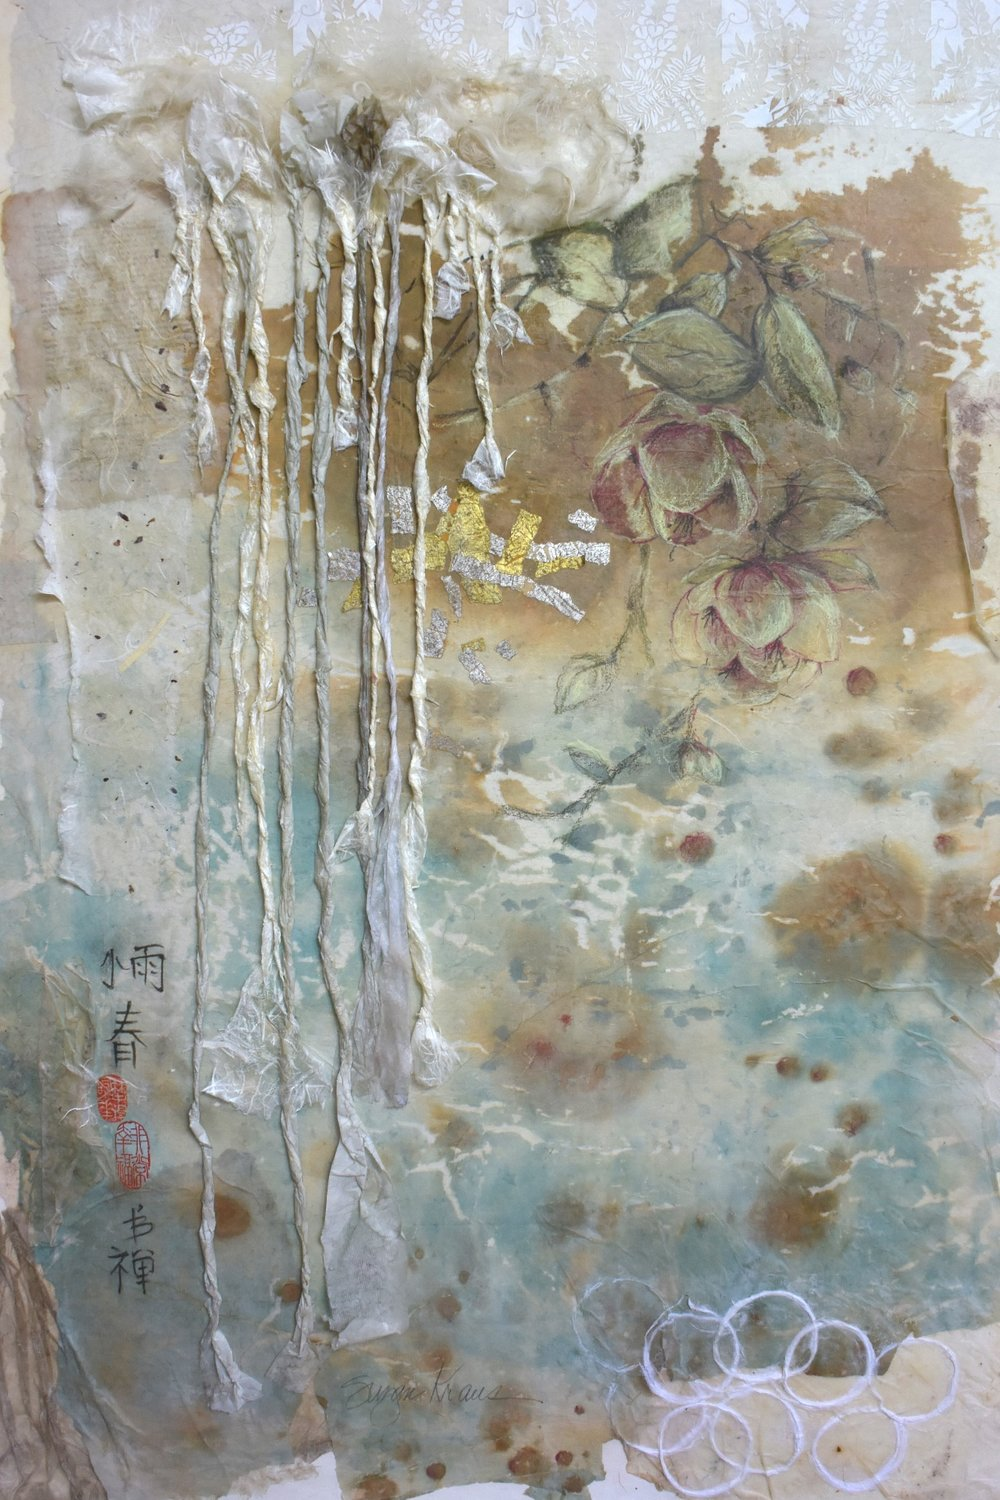 Light Rain, Early Spring;  collage/mixed media by Suzan Kraus